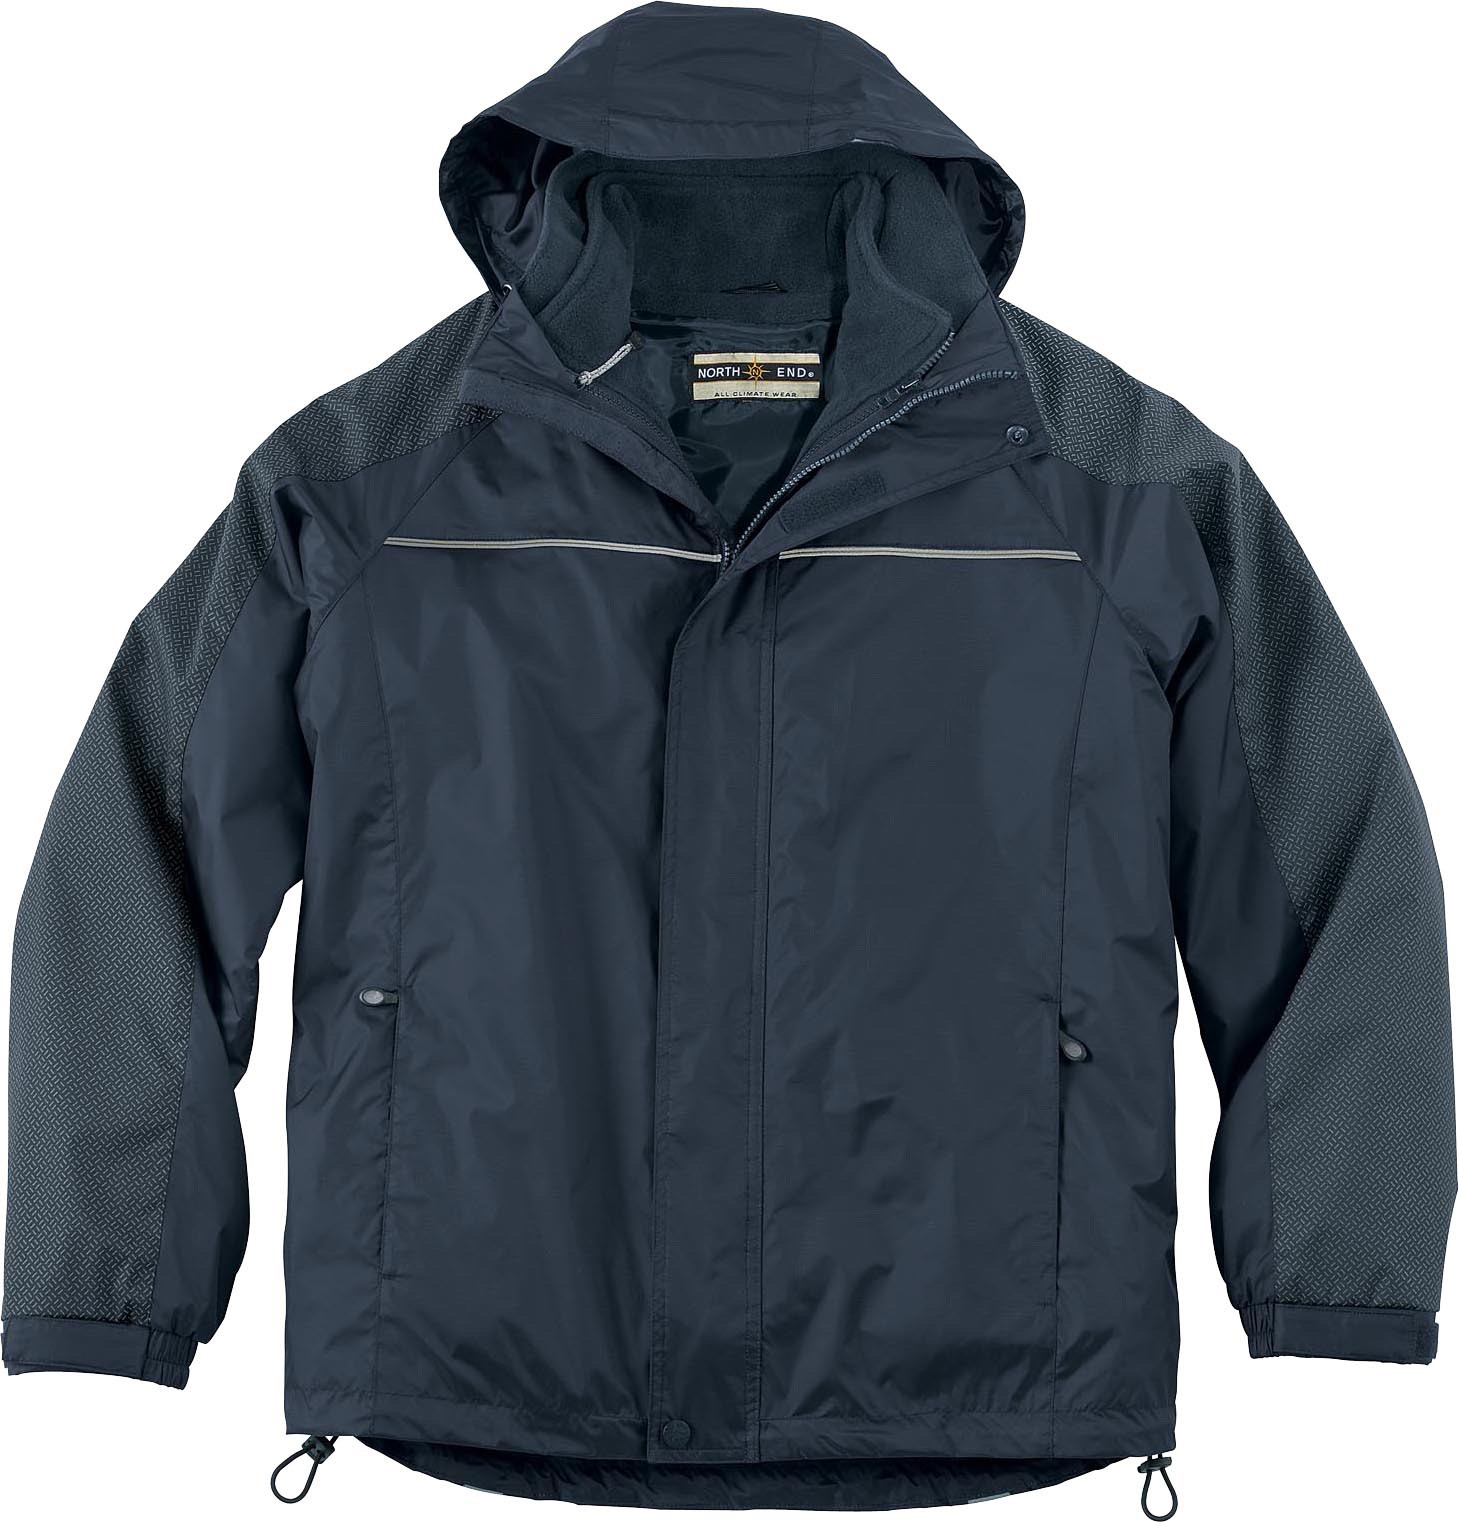 Ash City System Jackets 88124 - Men's Techno Performance ...